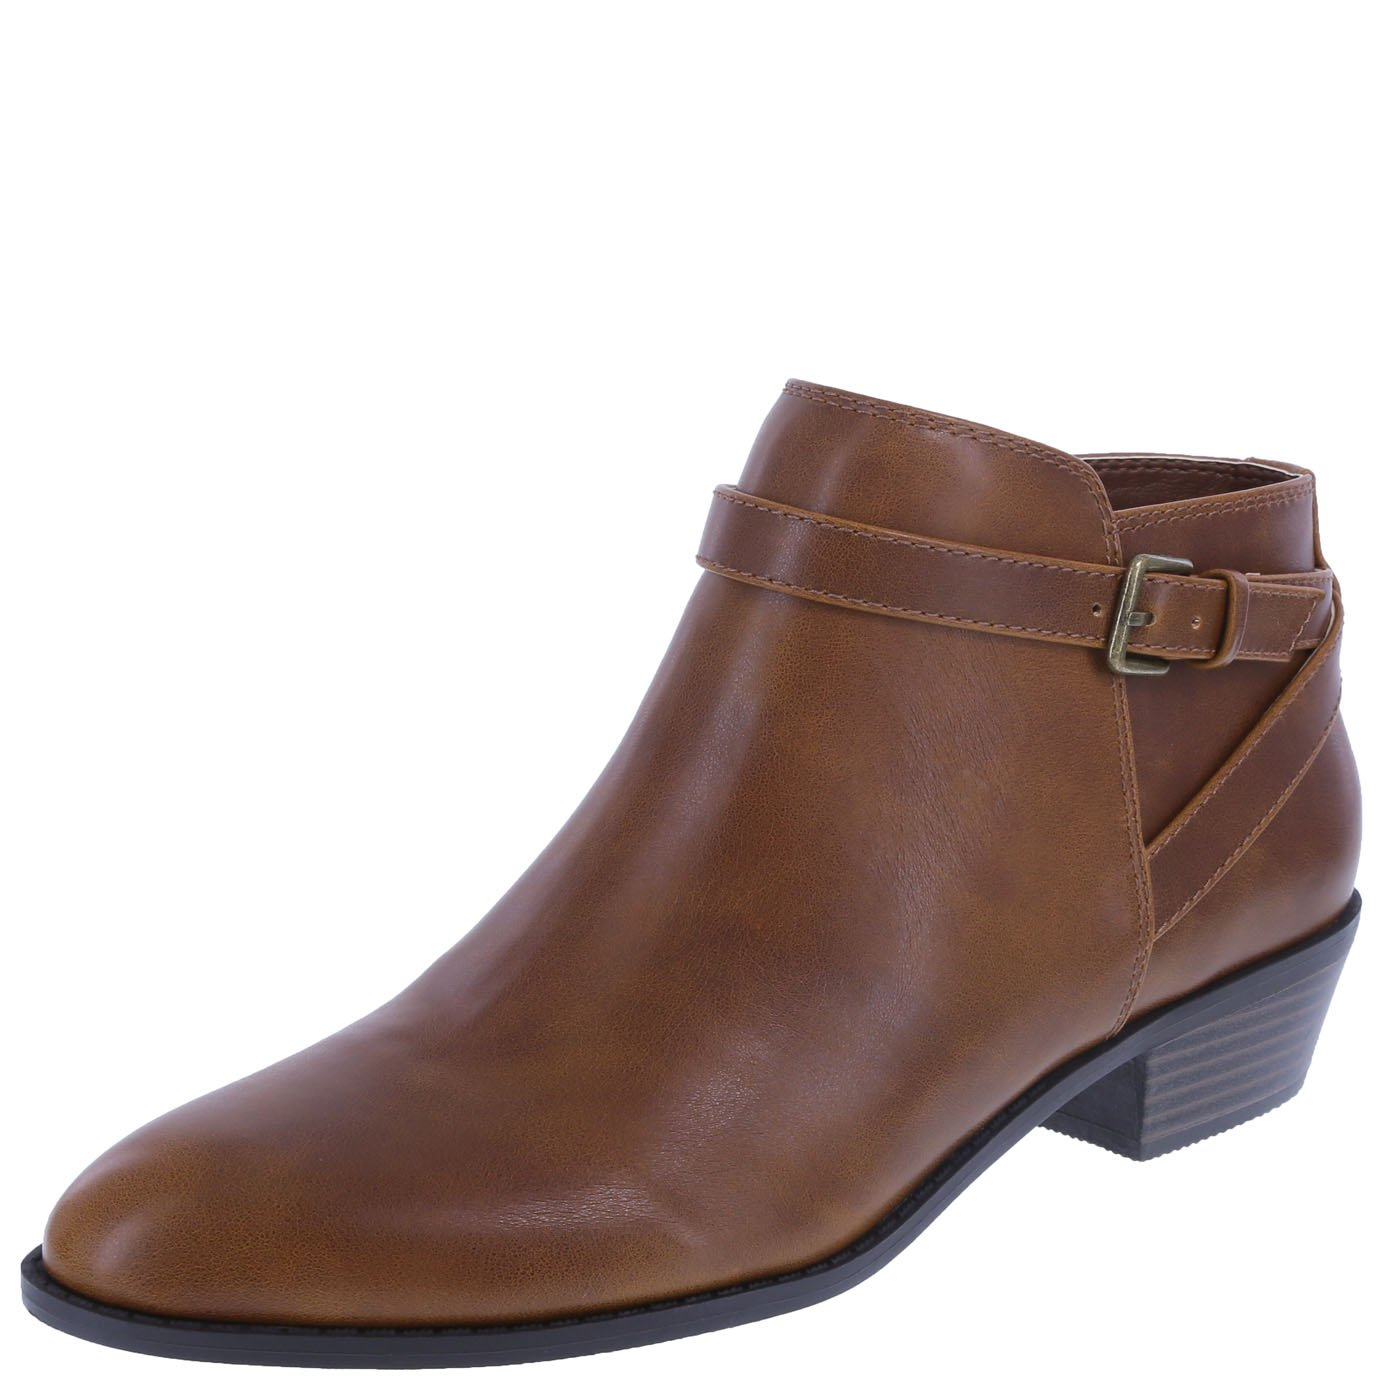 Lower East Side Women's Cognac Women's Spencer Ankle Boot 8.5 Wide